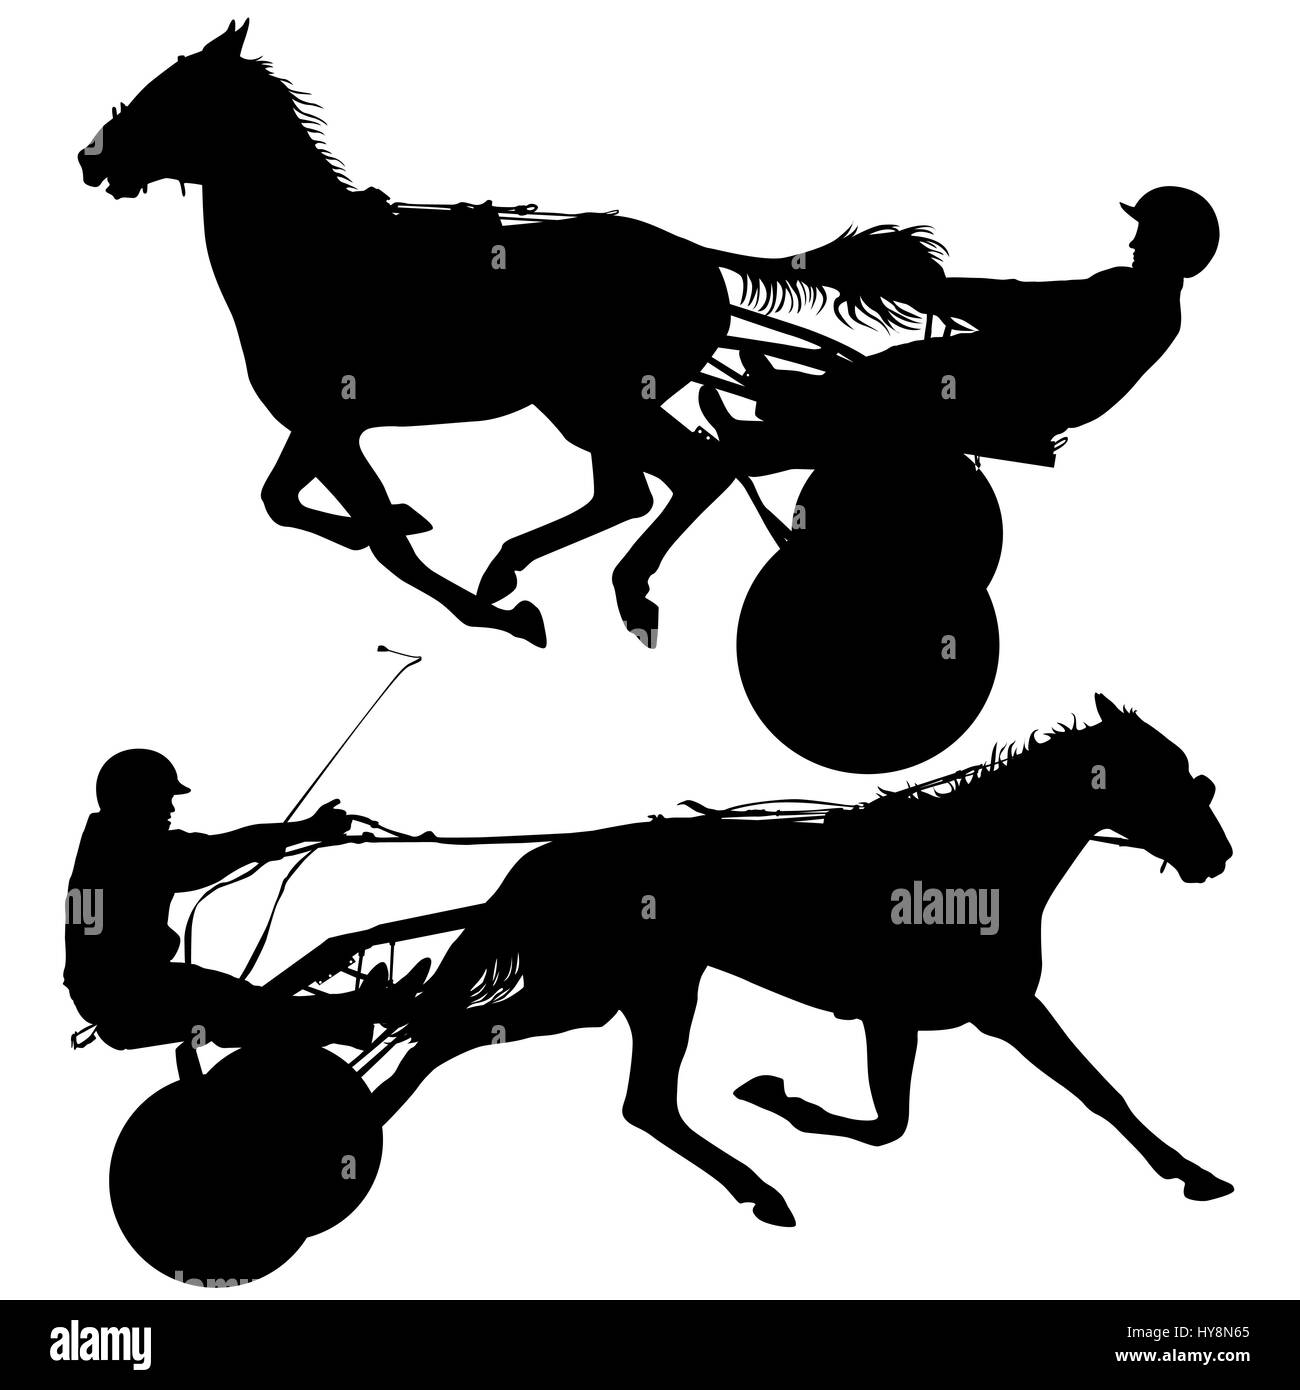 silhouette of horse and jockey - Stock Image